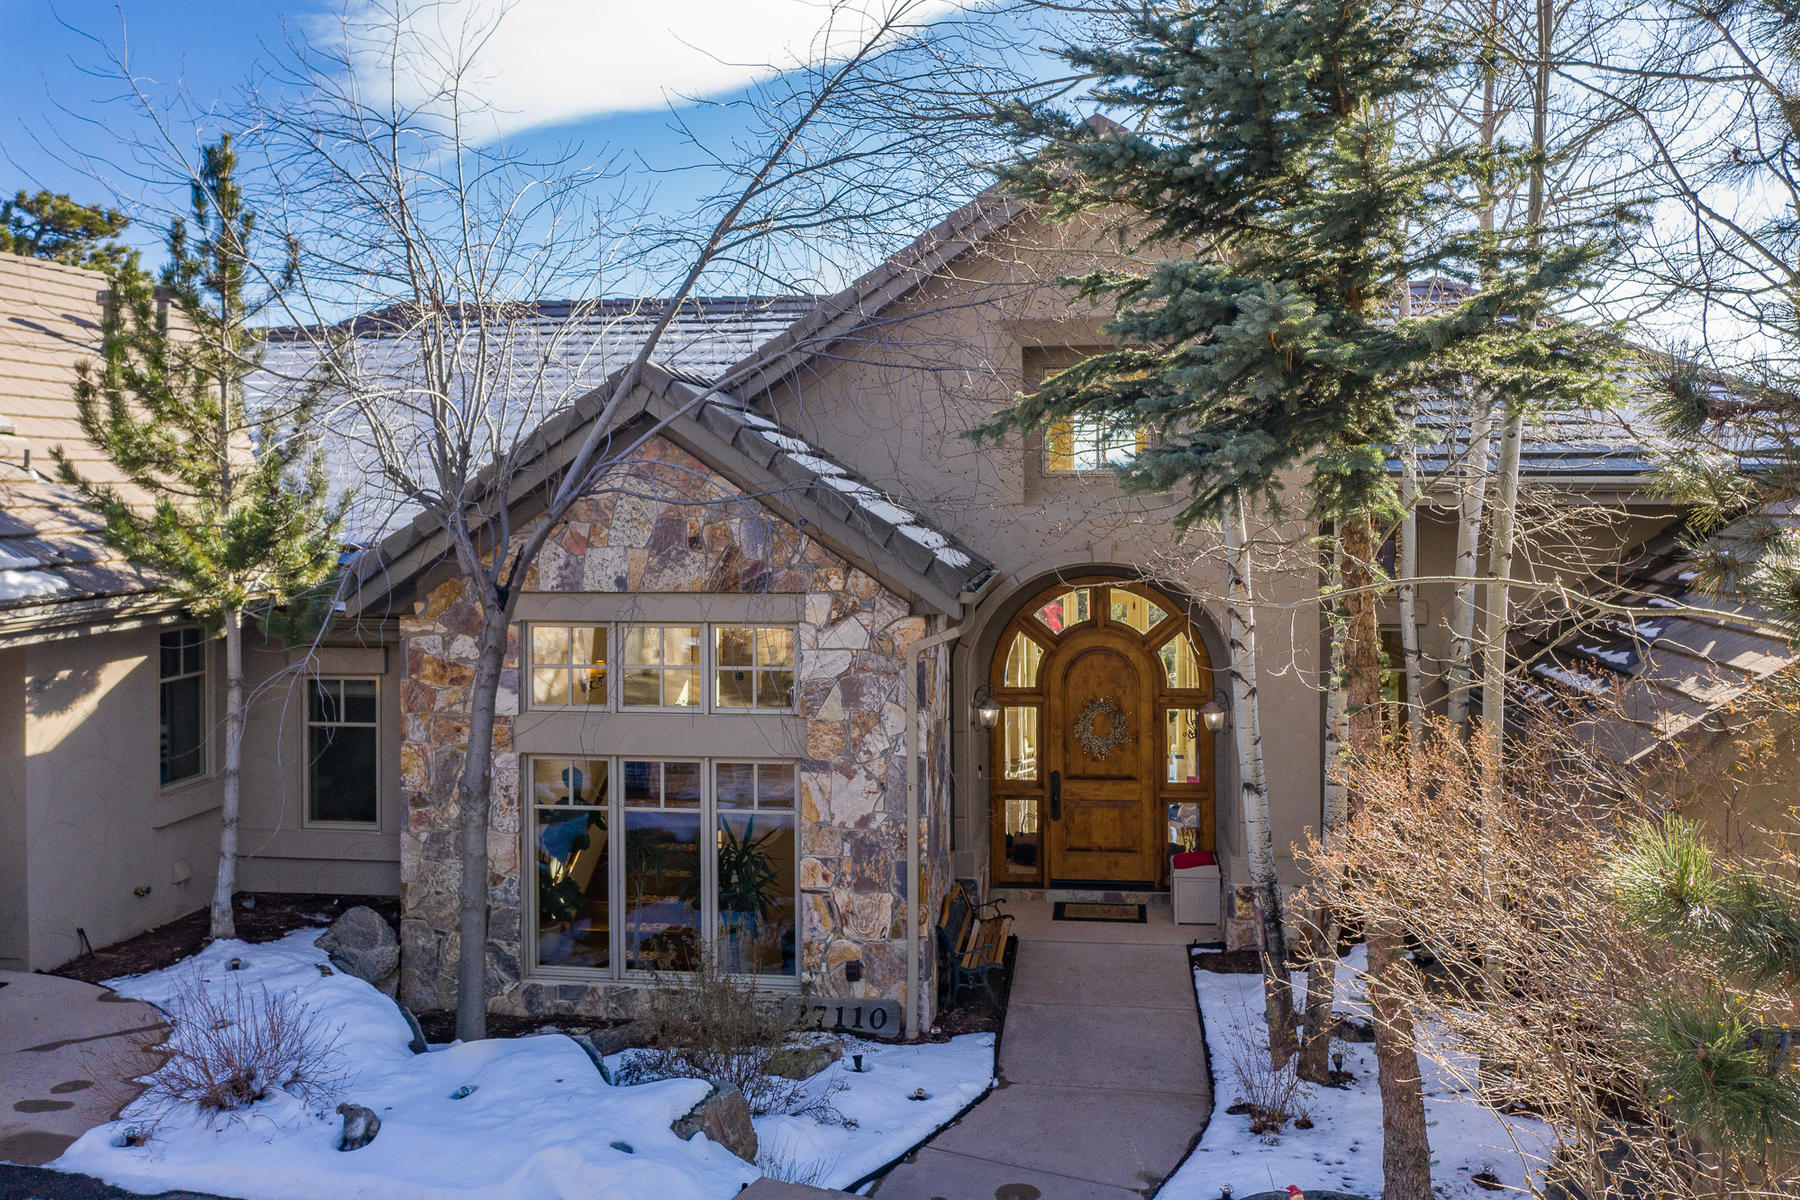 Single Family Home for Active at Exceptional Spring Ranch Estate- A Colorado Dream! 27110 Craig Lane Golden, Colorado 80401 United States